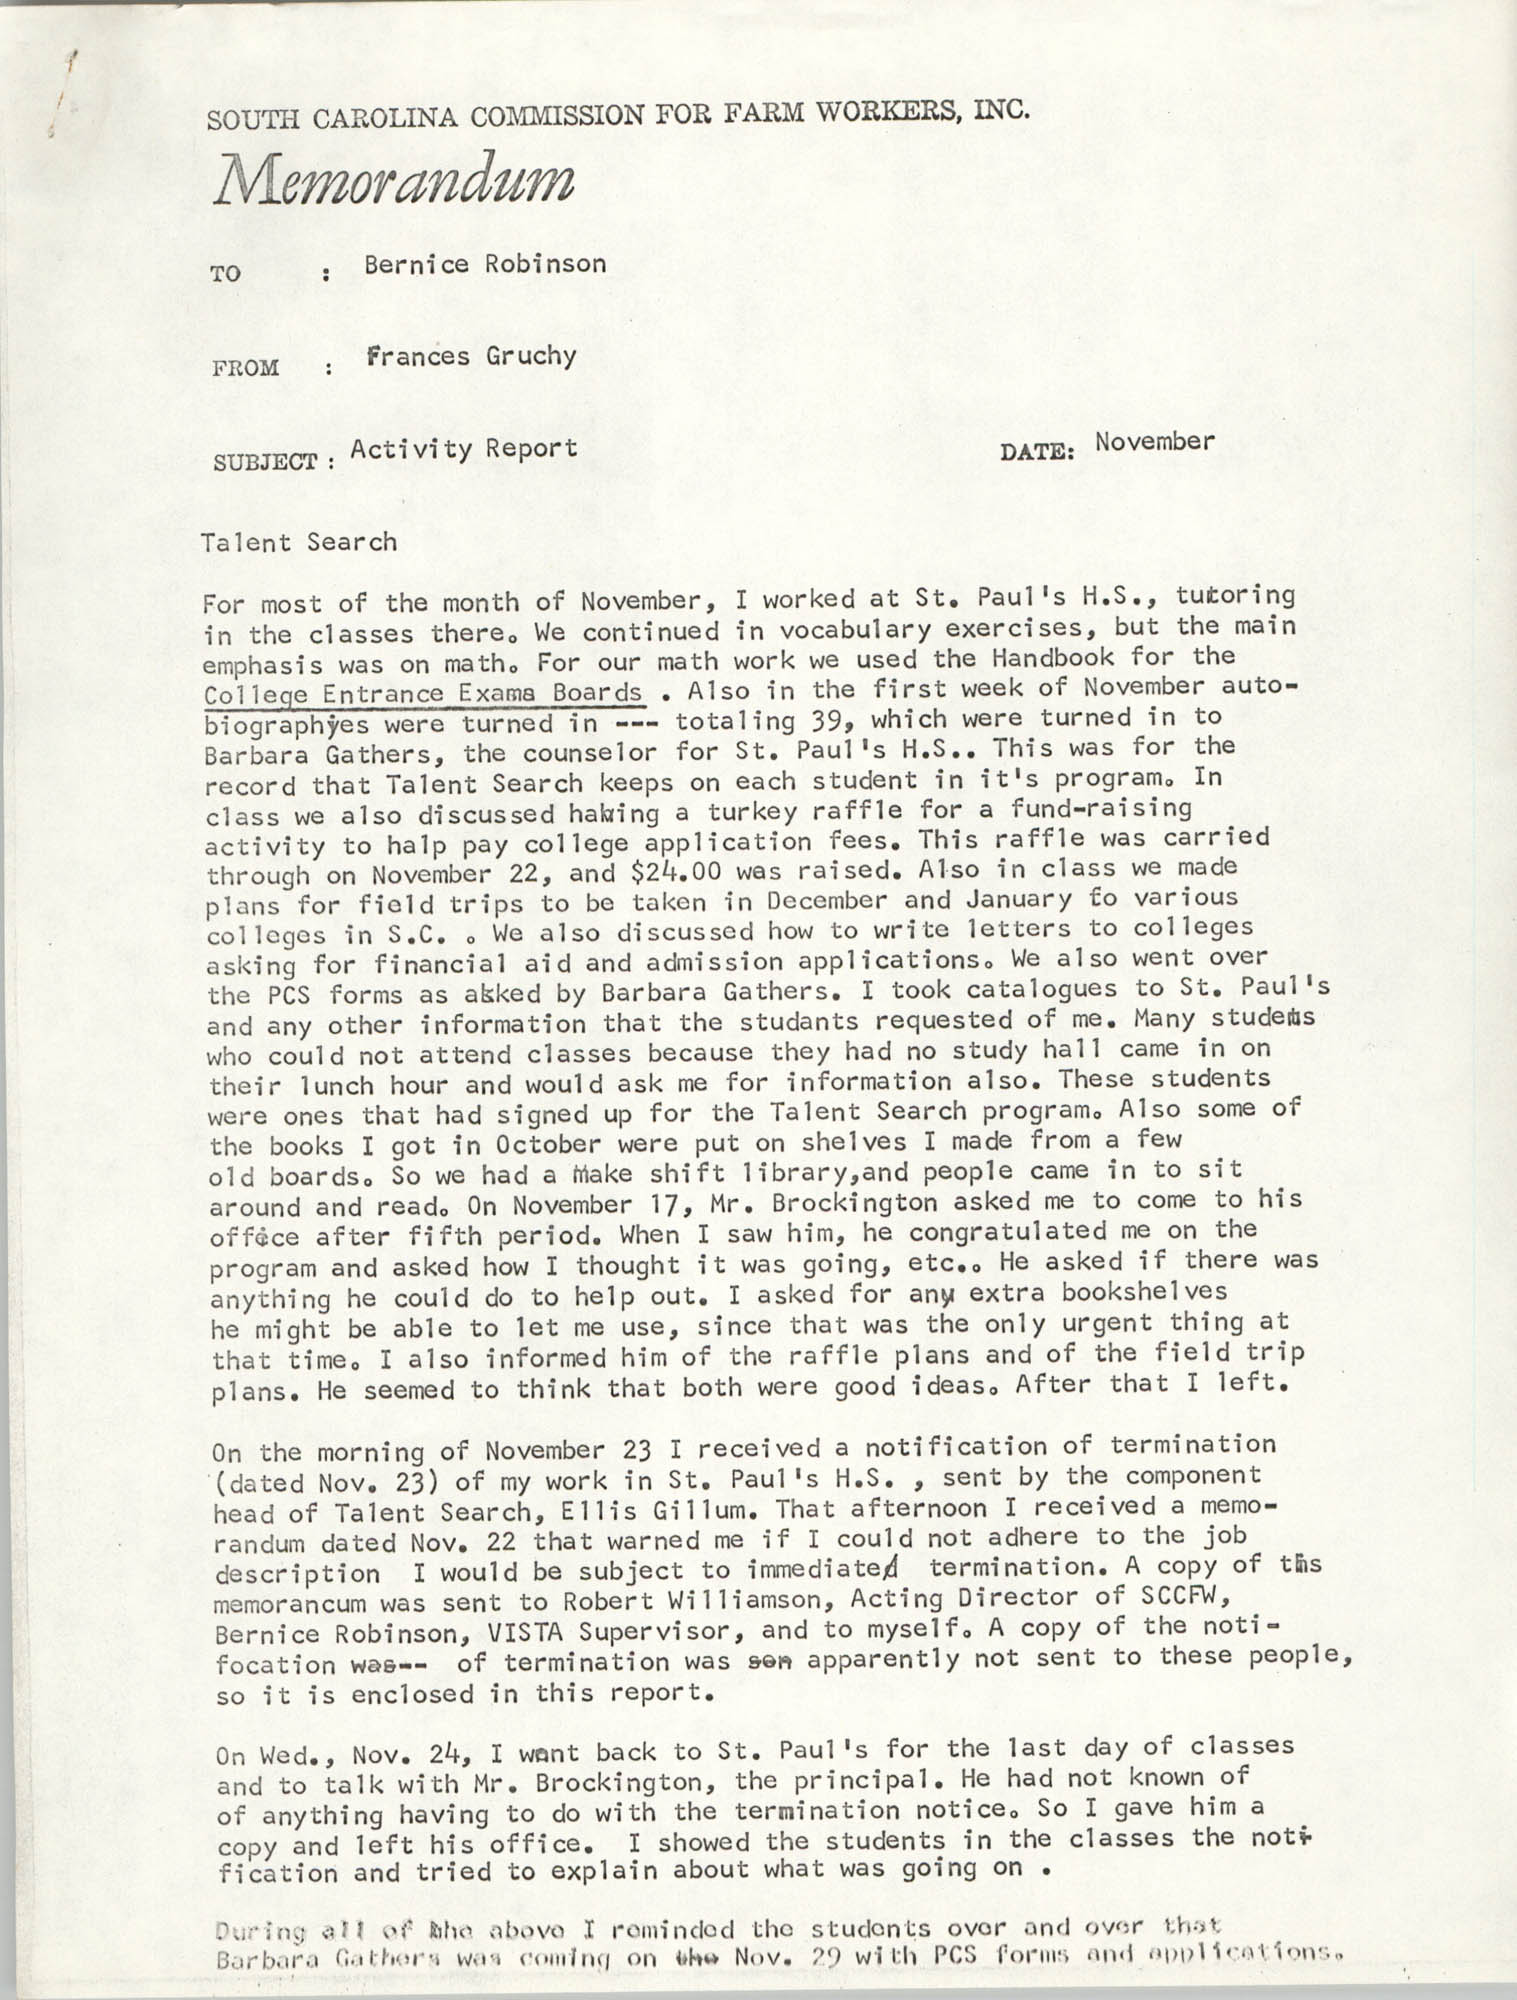 Memorandum from Frances Gruchy to Bernice Robinson, November 1971